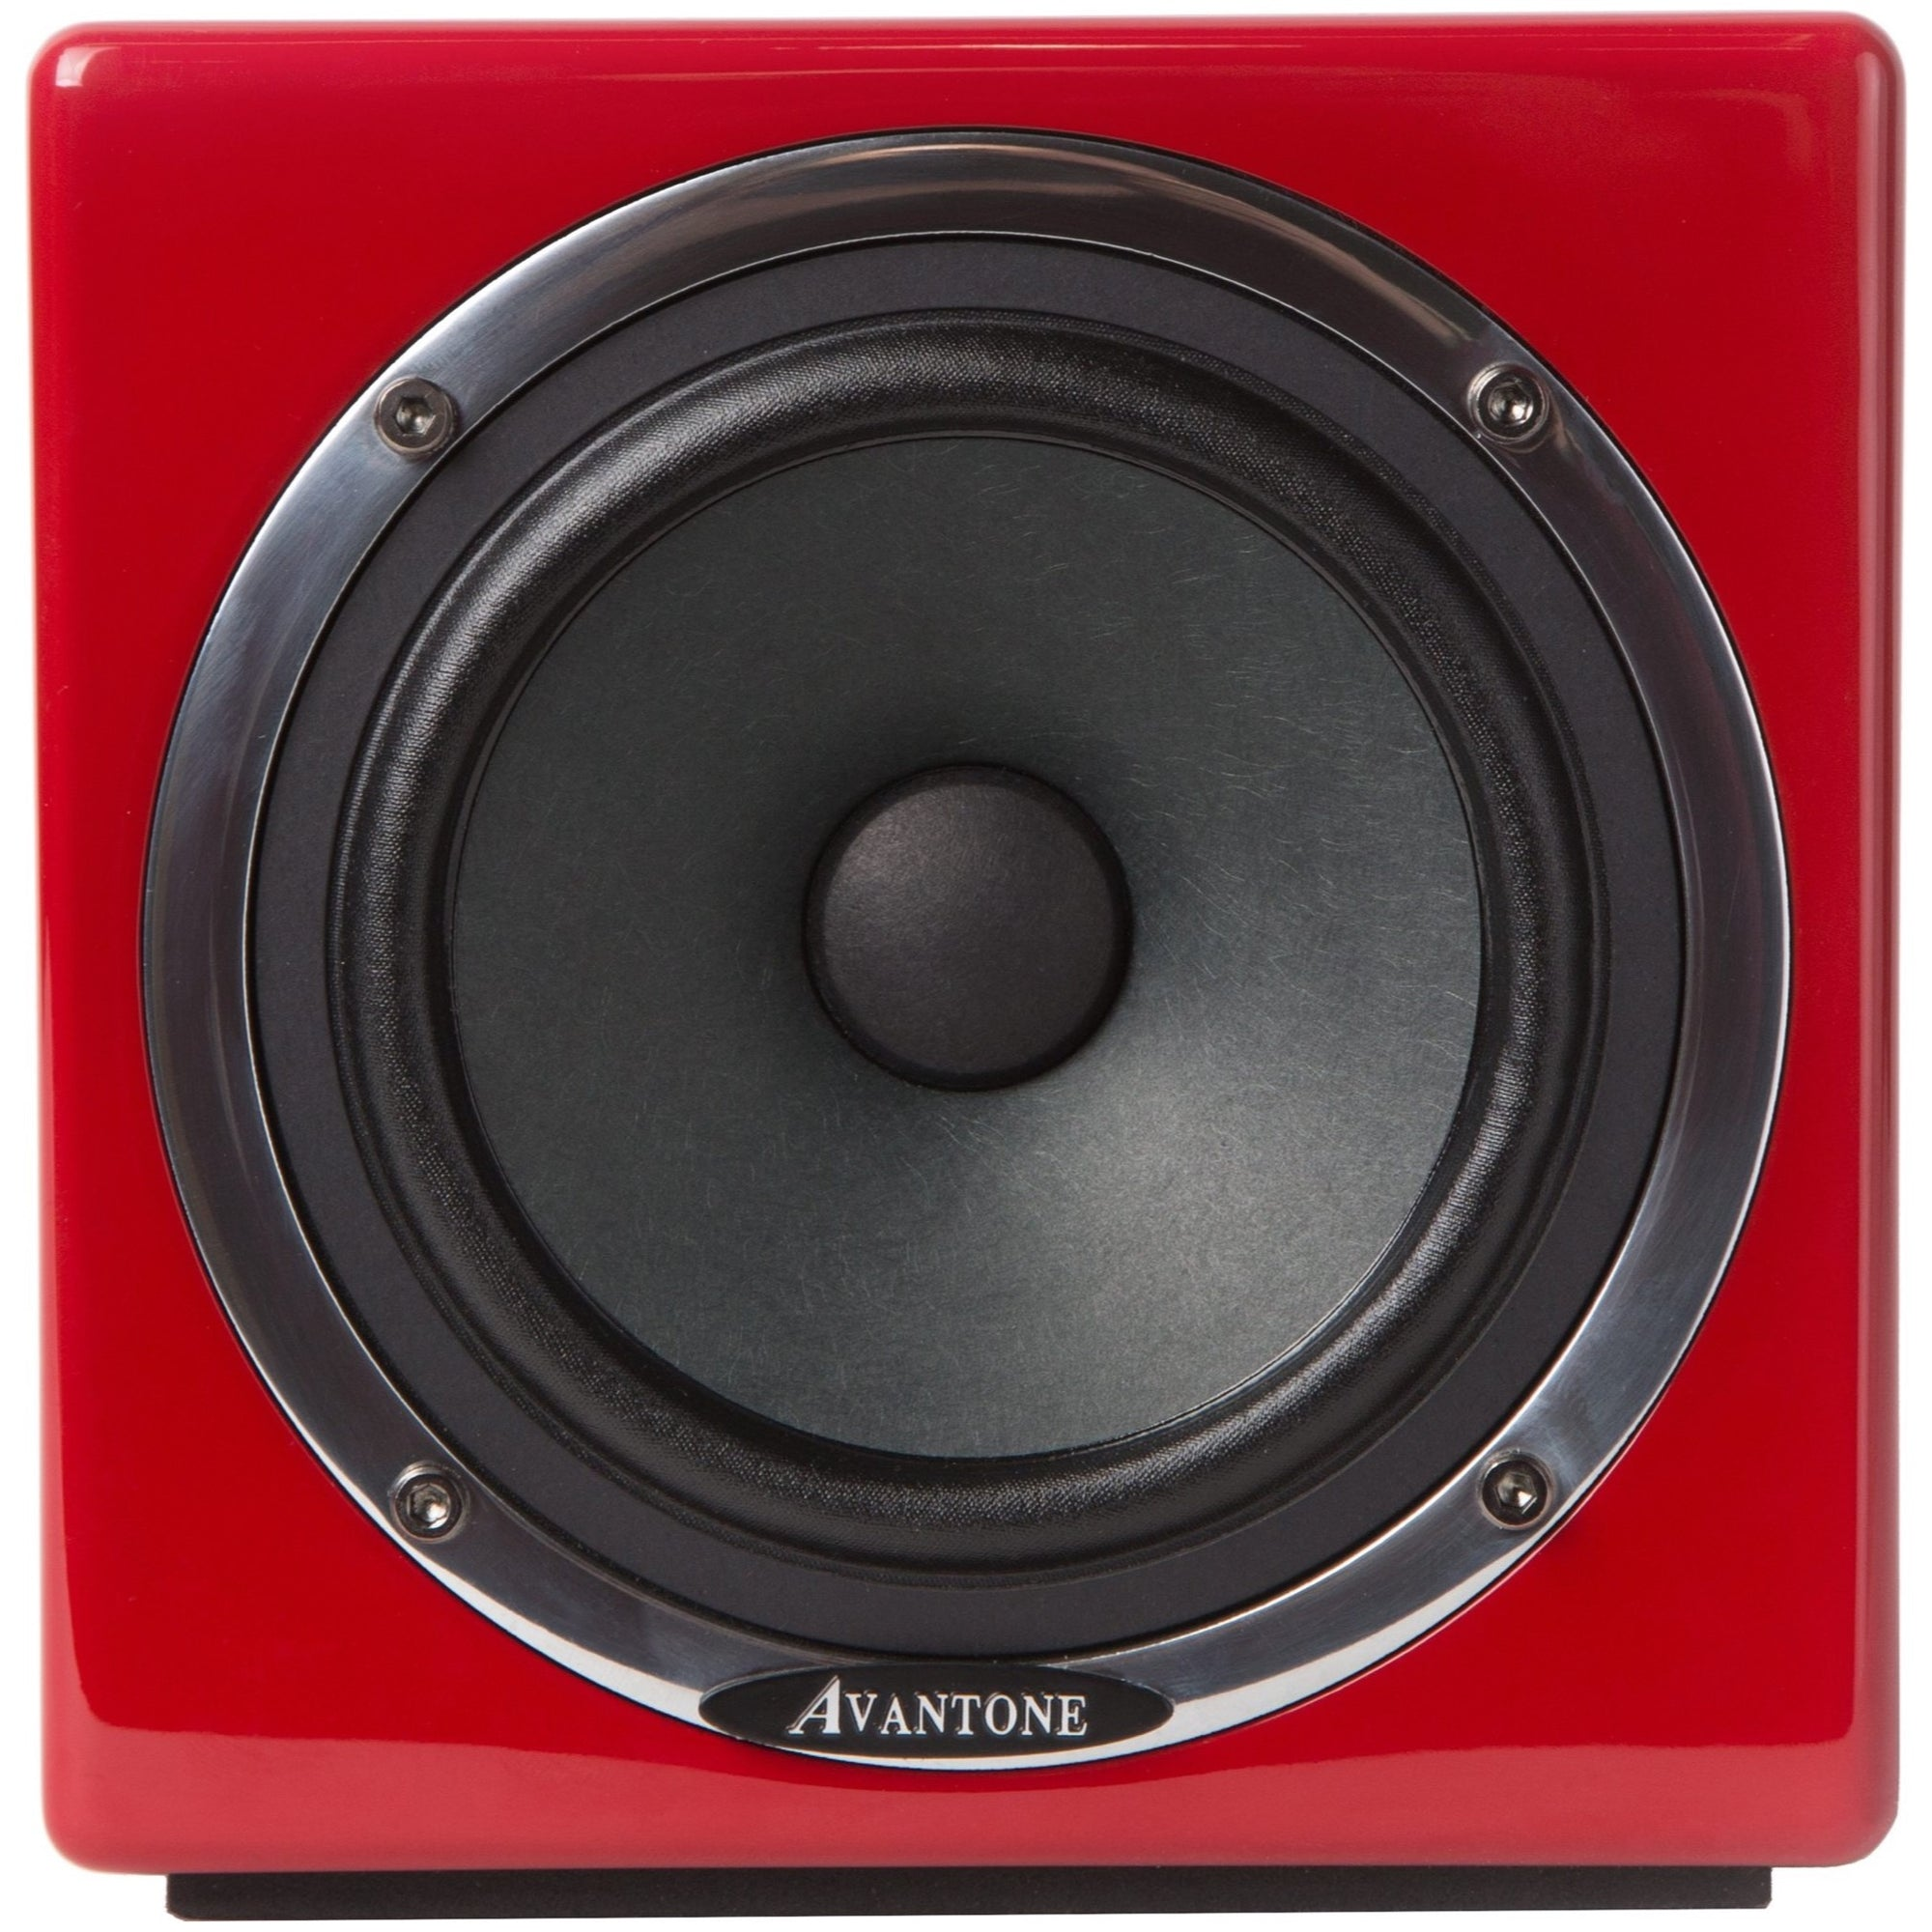 Avantone MixCubes Active Studio Monitor (60 Watts, 1x5.25 Inch), Red, Single